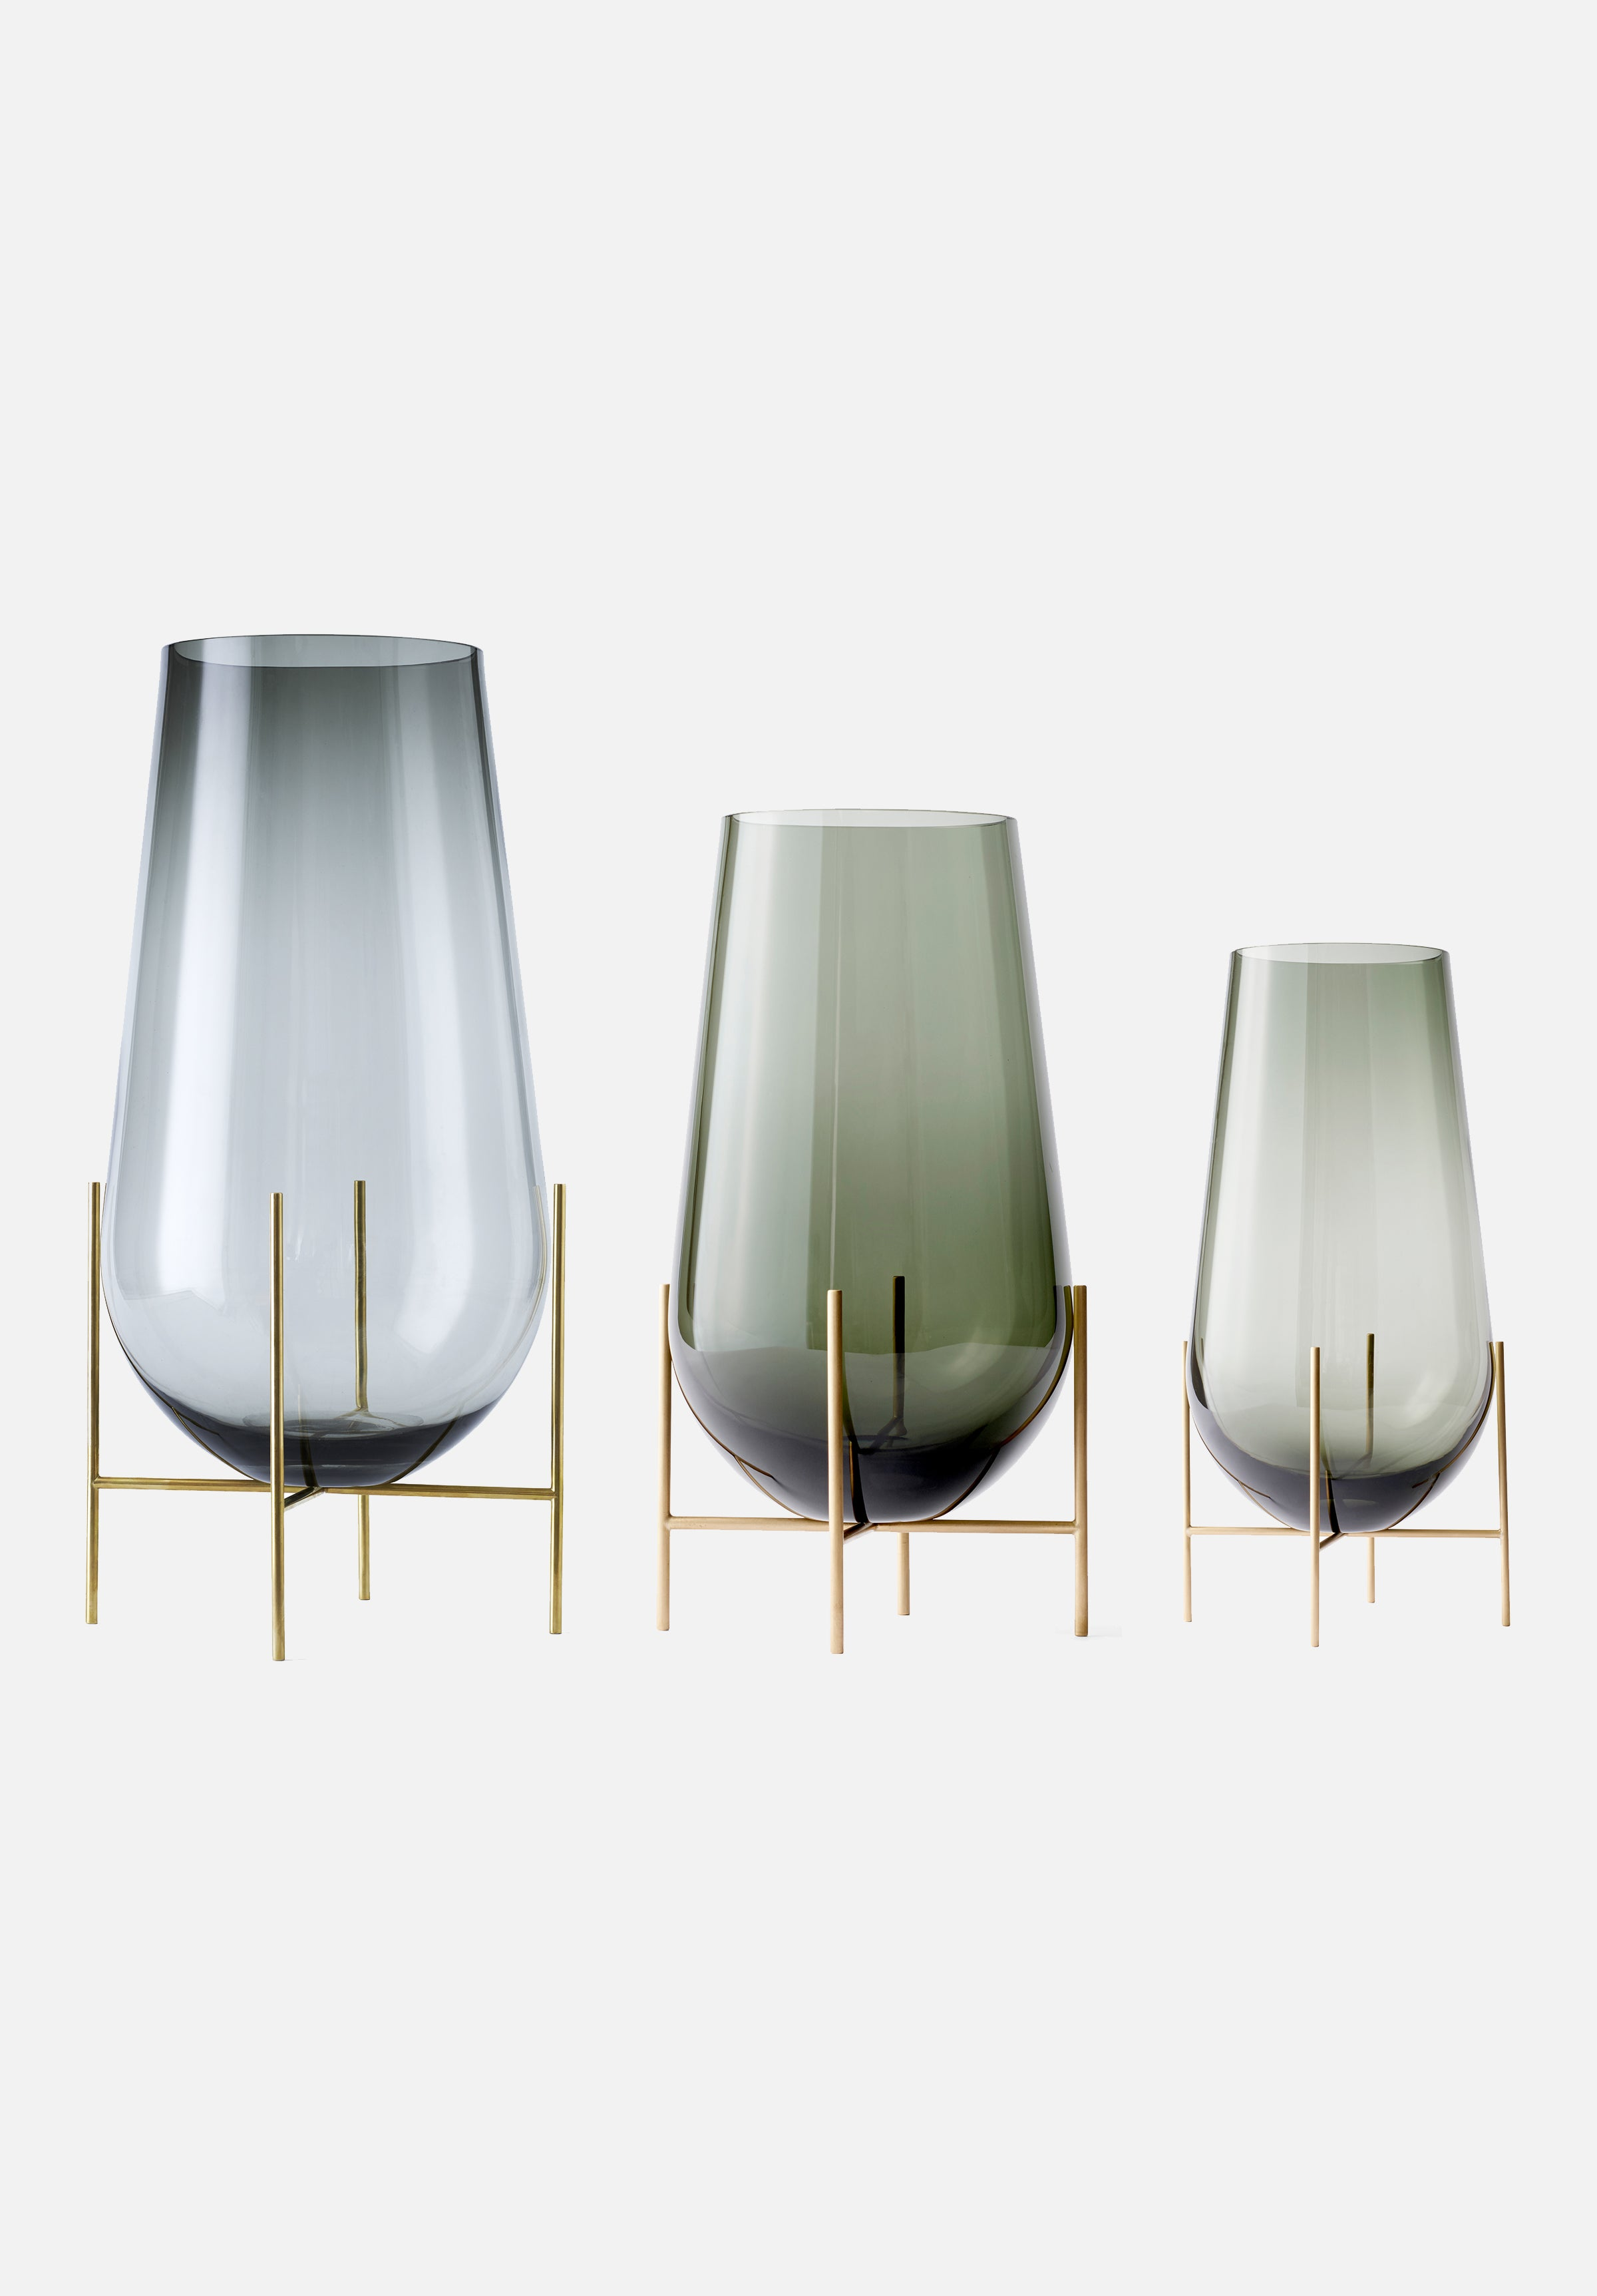 Echasse Vase-Theresa Arns-Menu-Small-danish-interior-furniture-denmark-Average-design-toronto-canada